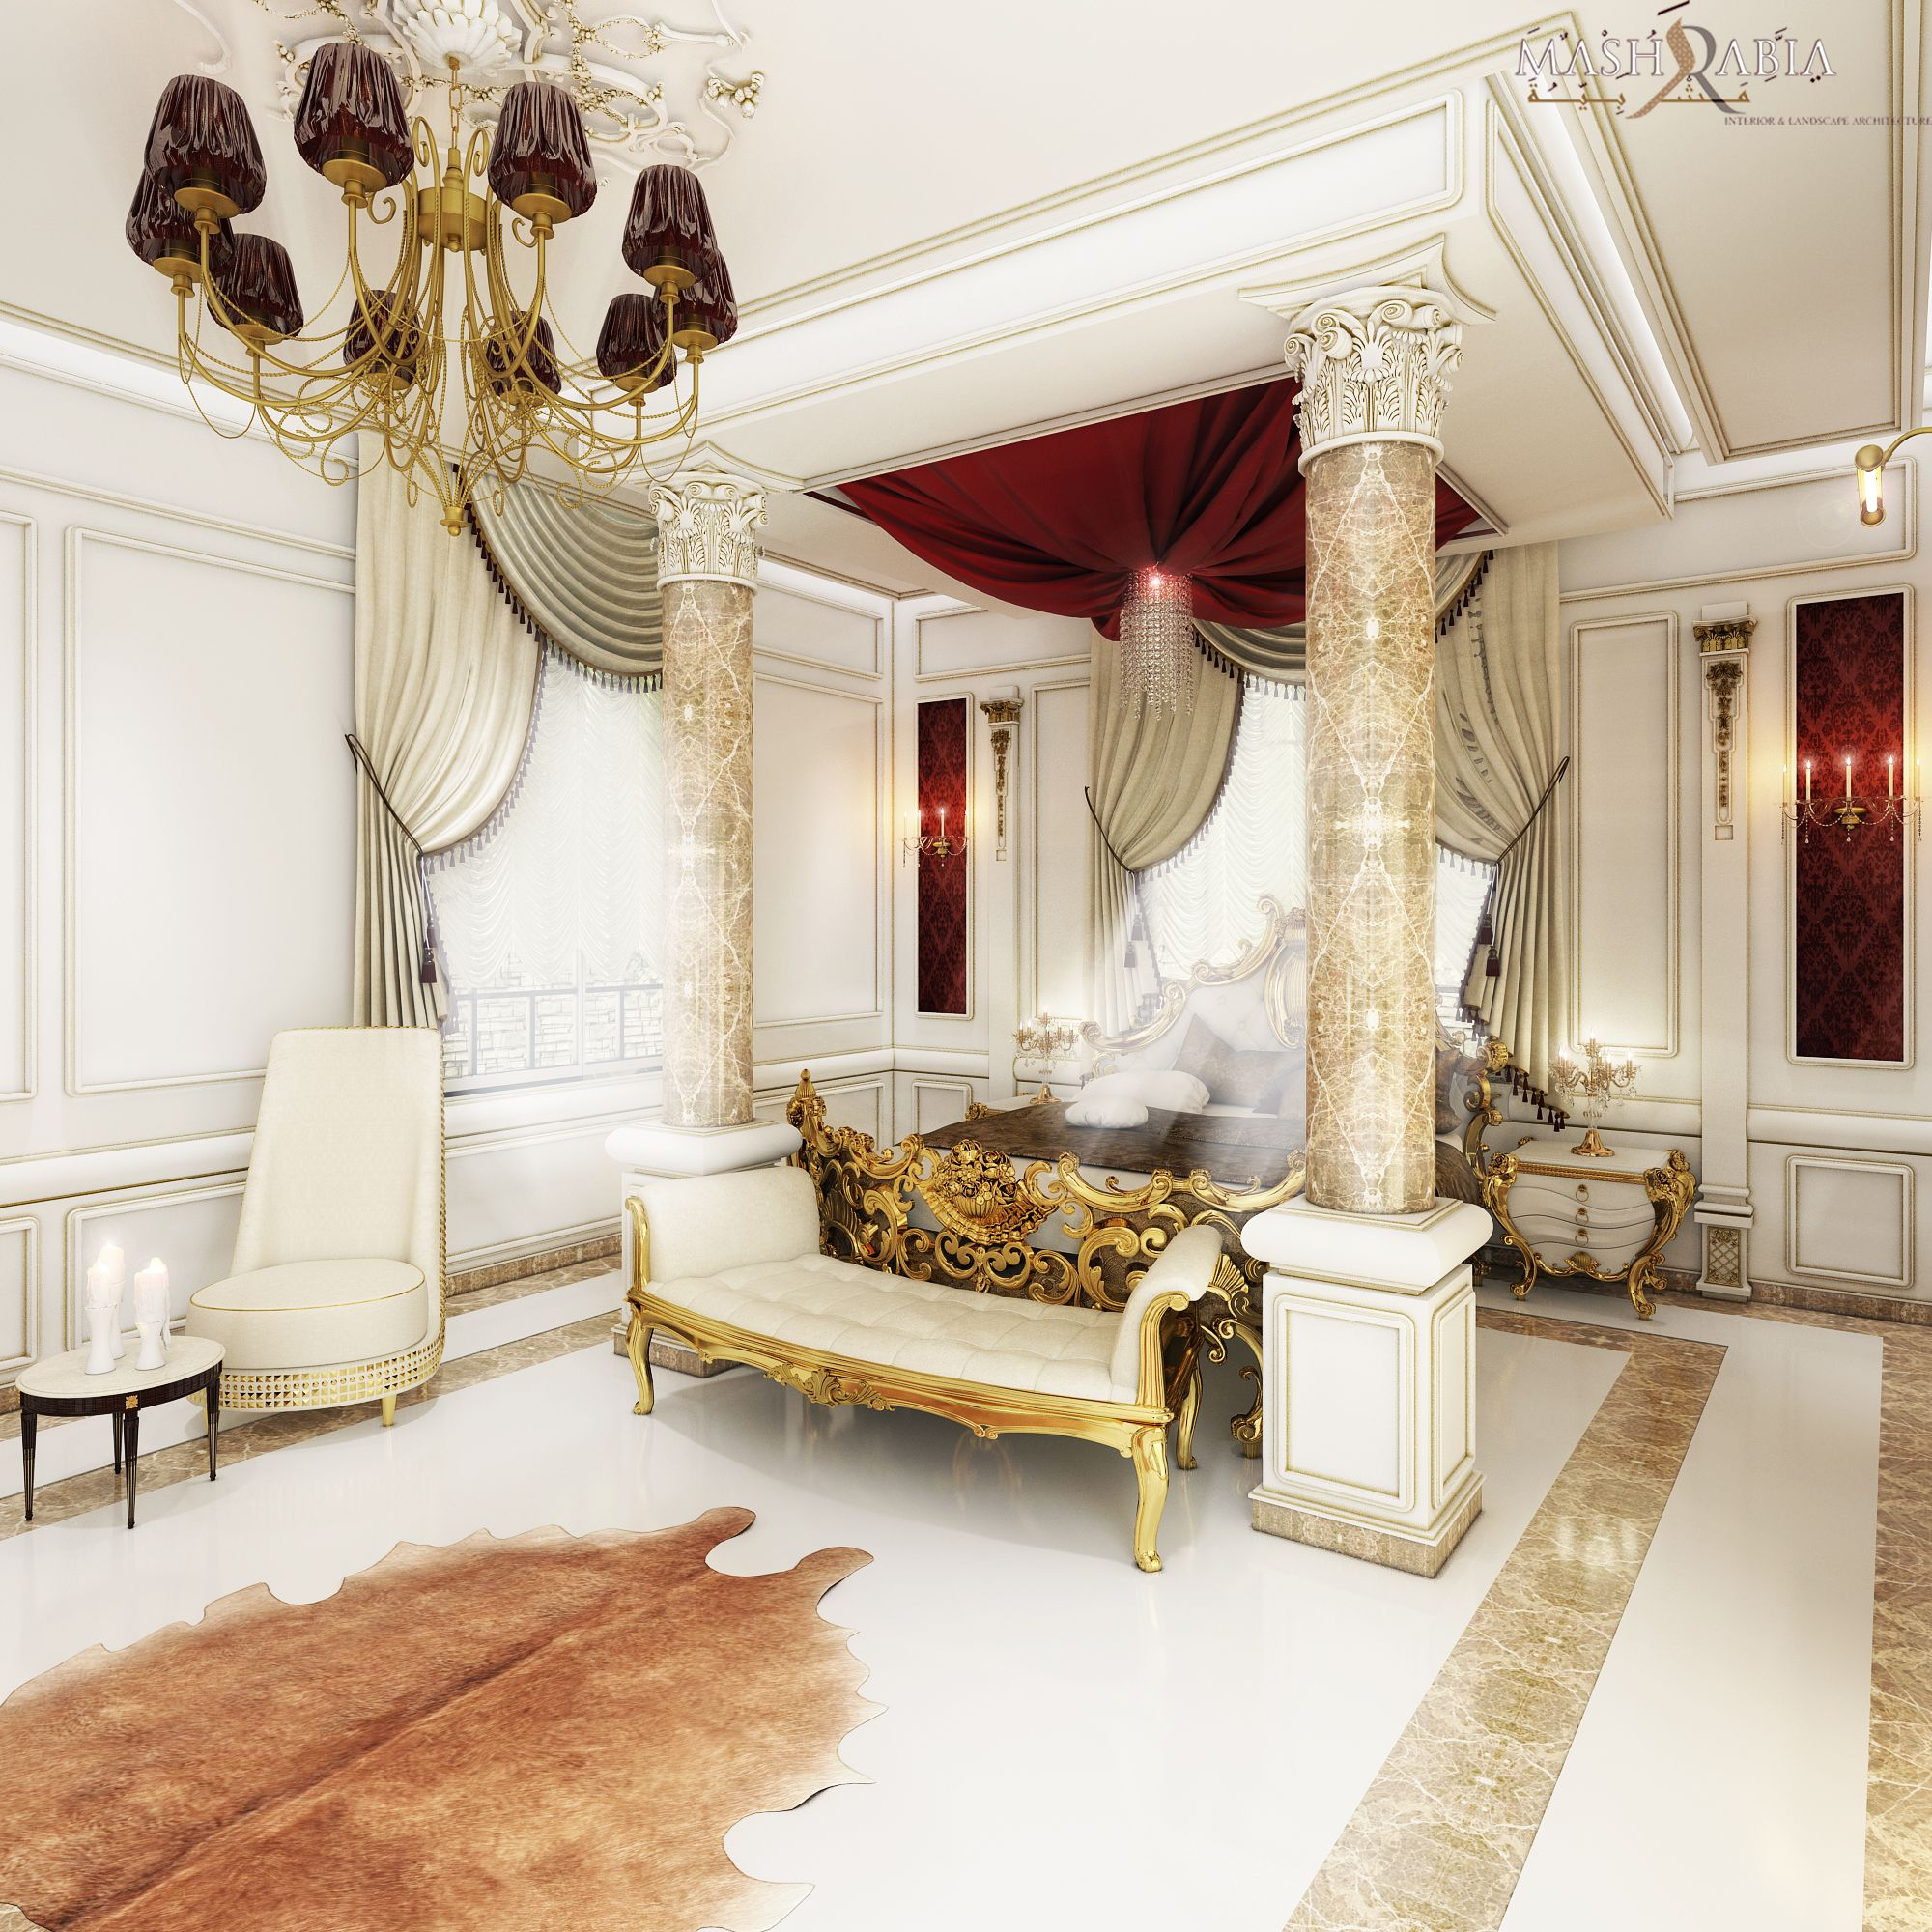 Royal Bedroom Royal Bedroom Luxury Palace Classic